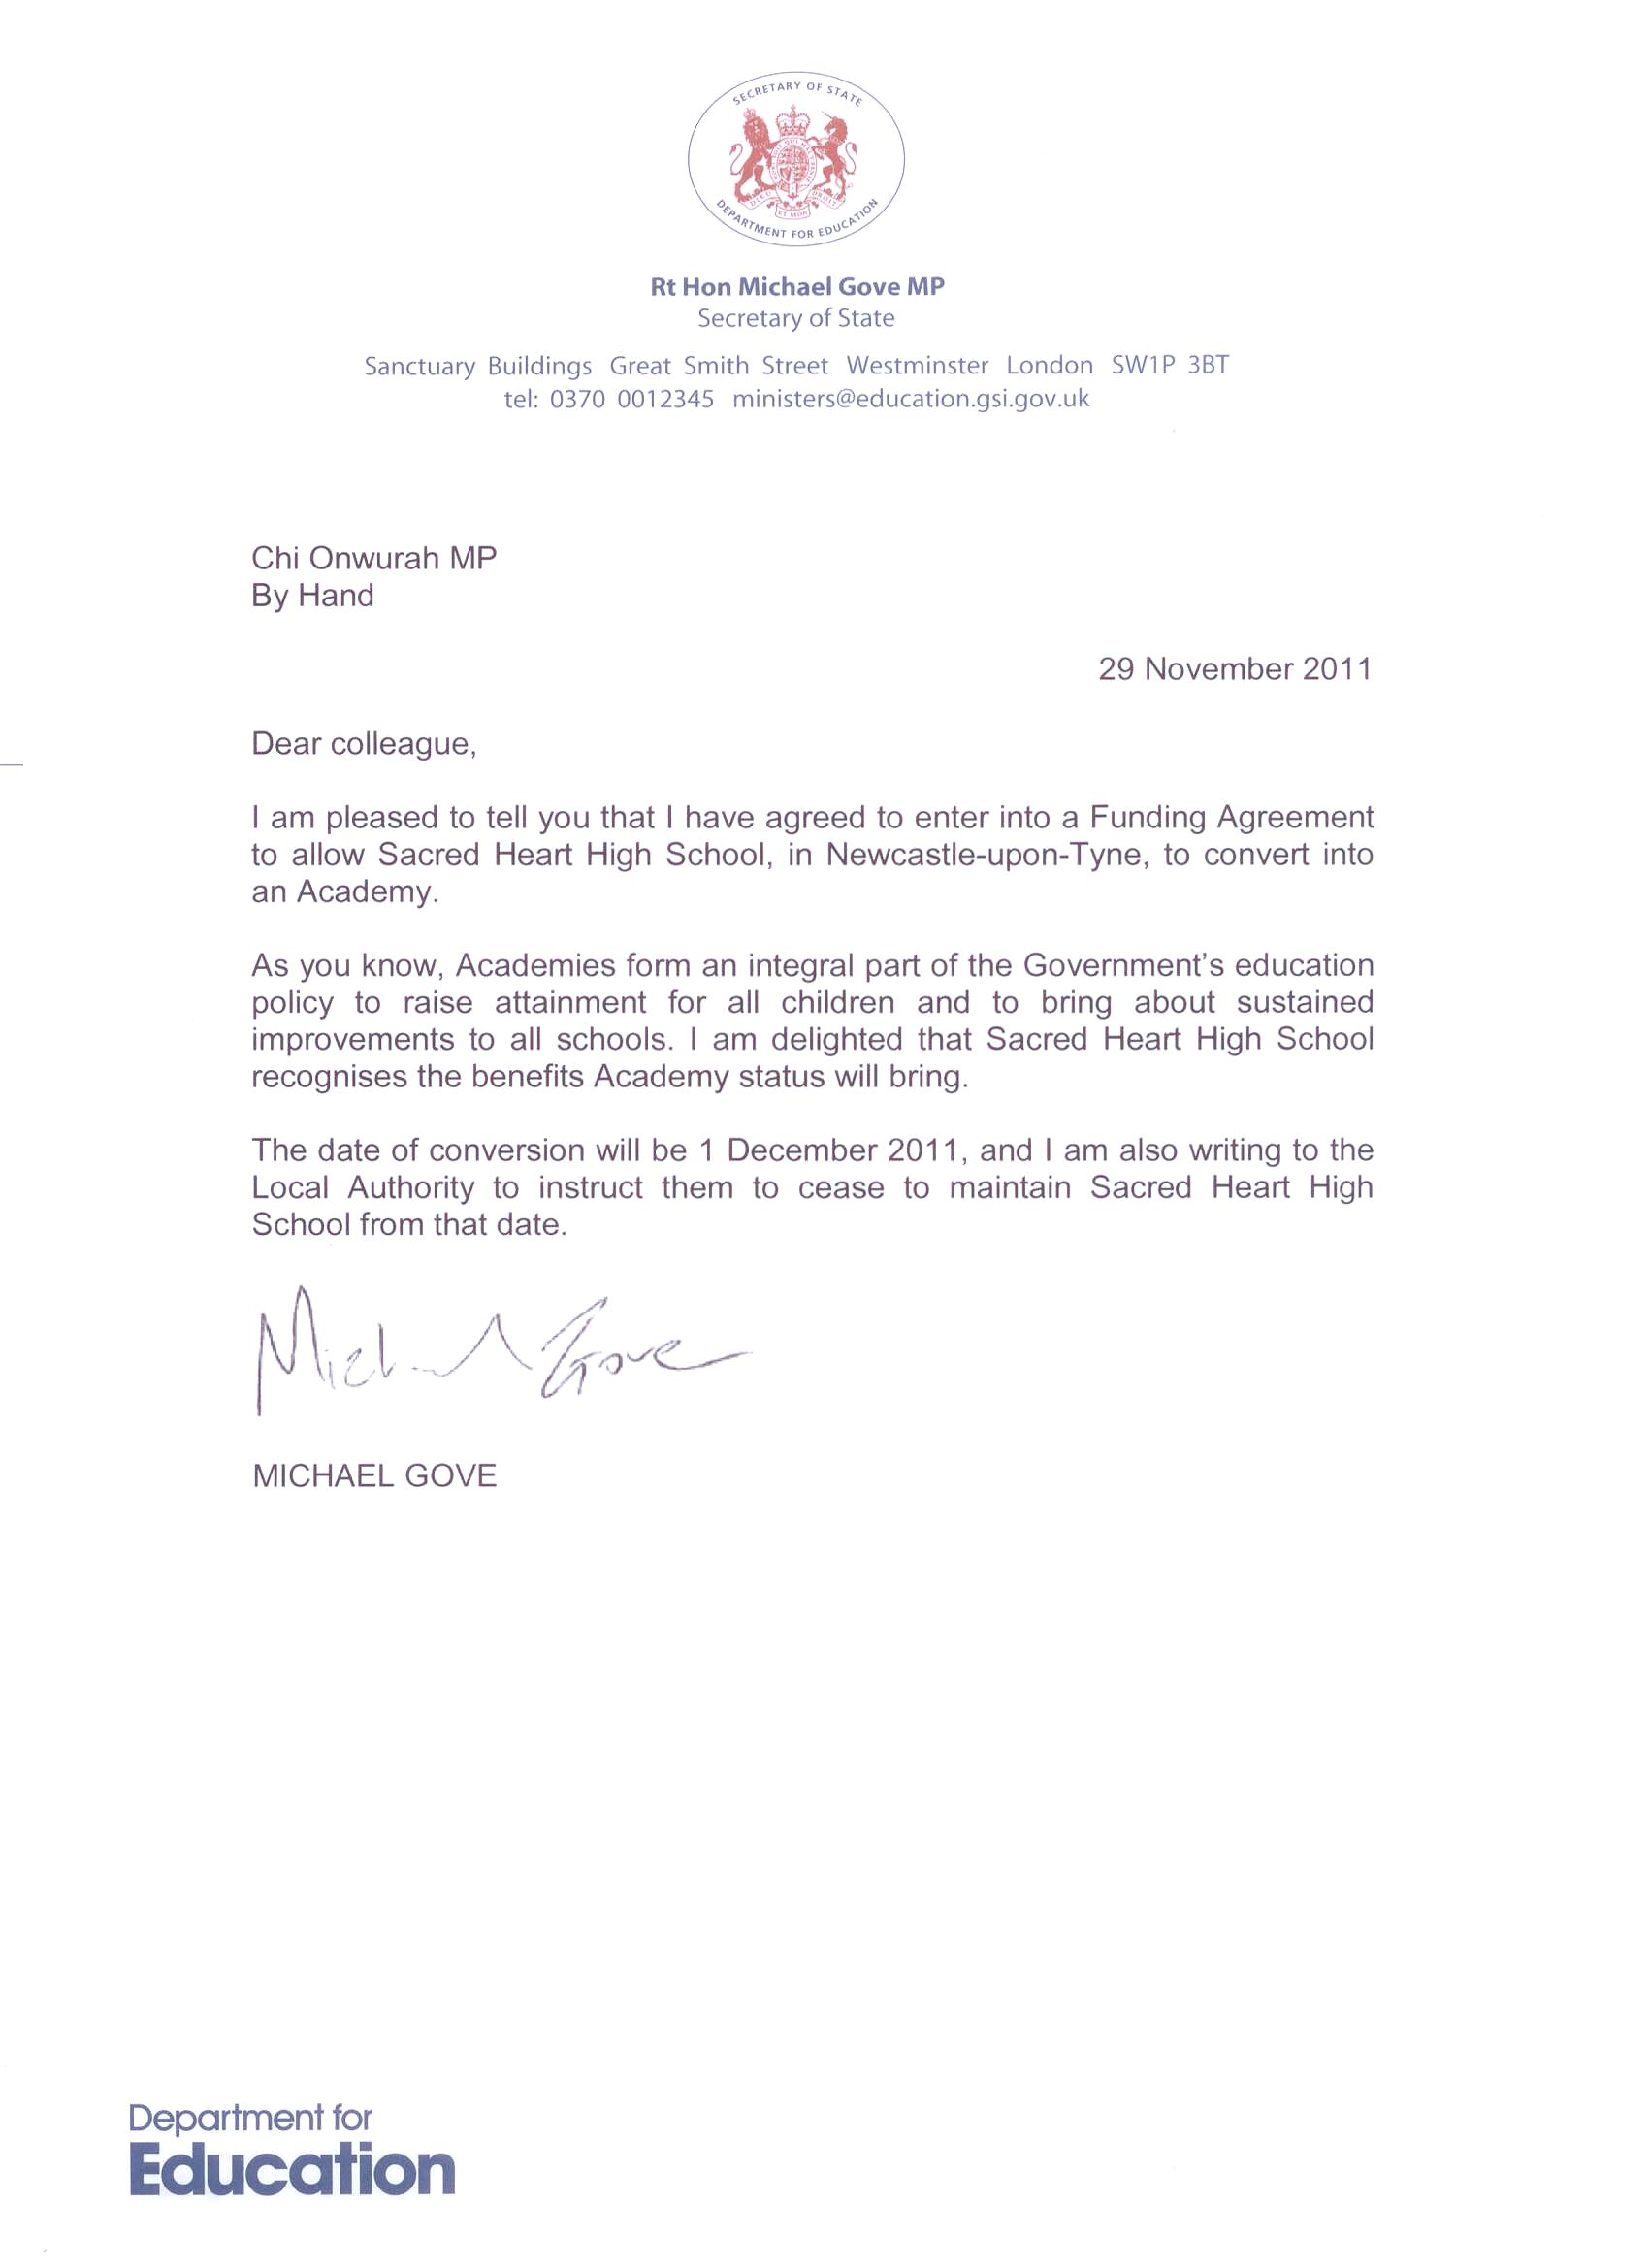 letter to chi from michael gove regarding sacred heart